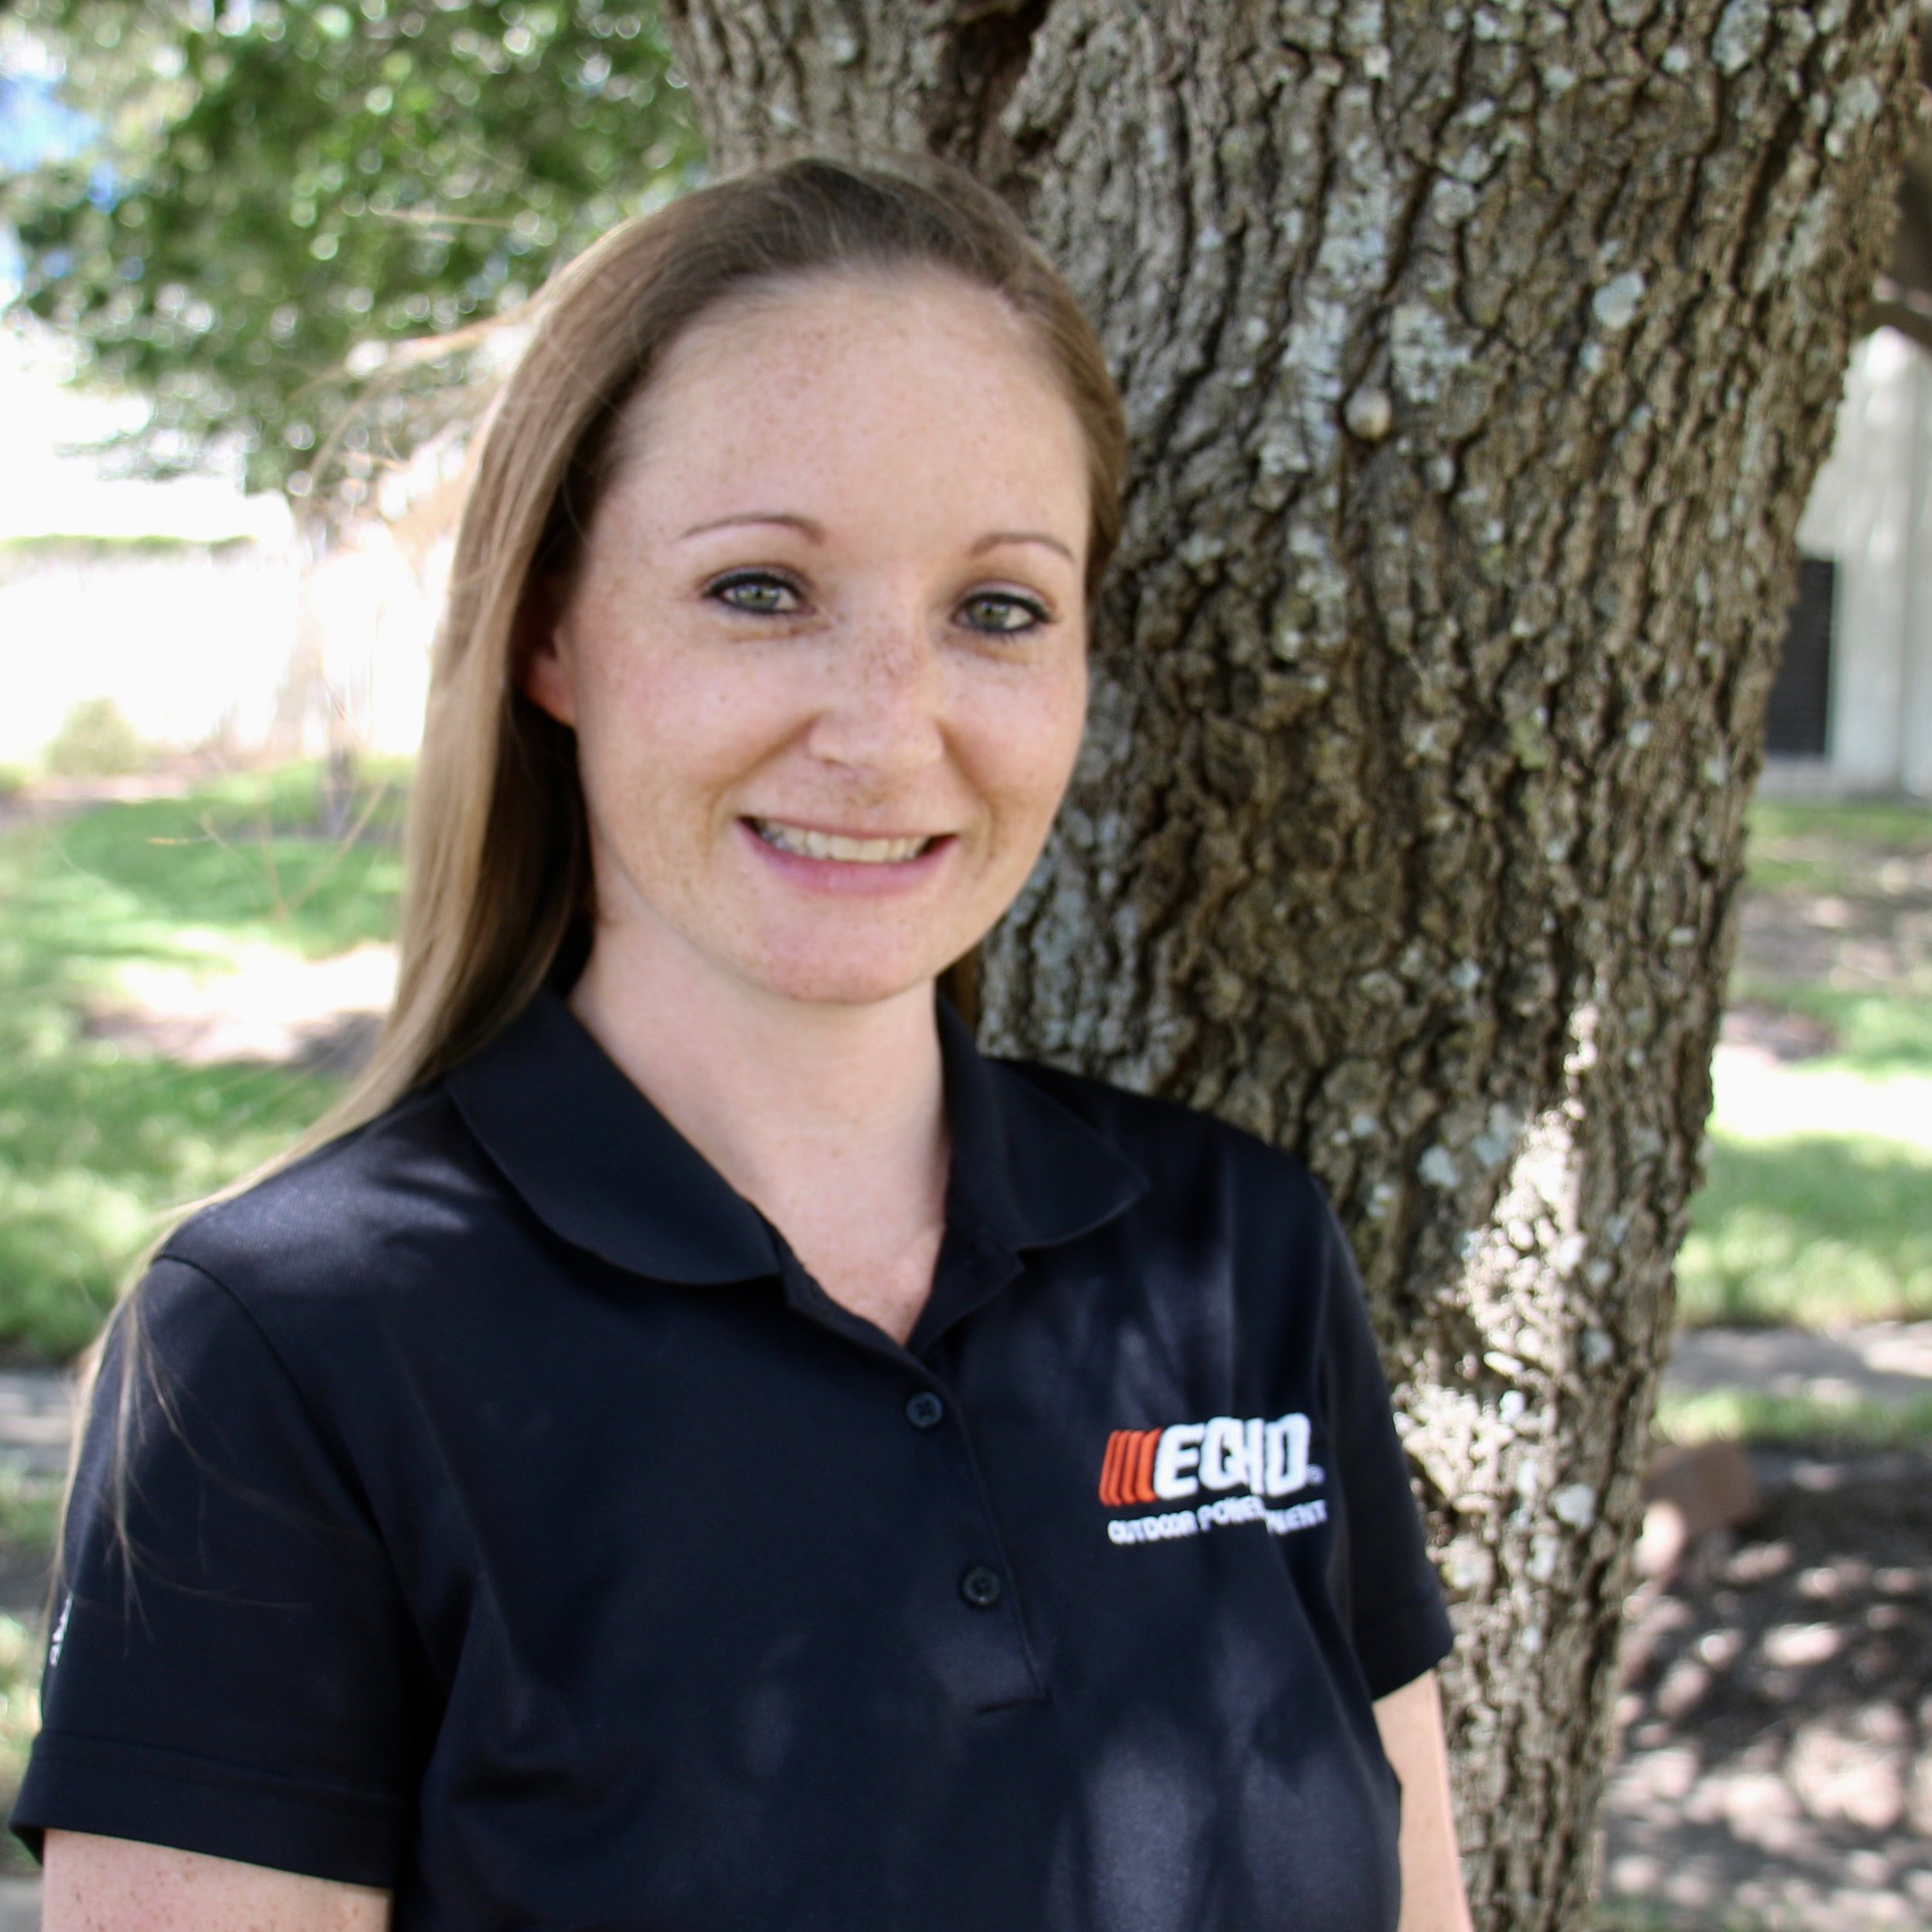 Crystal Mateer - Accounts Receivable / Credit Manager512-948-4140crystalmateer@topequipment.net